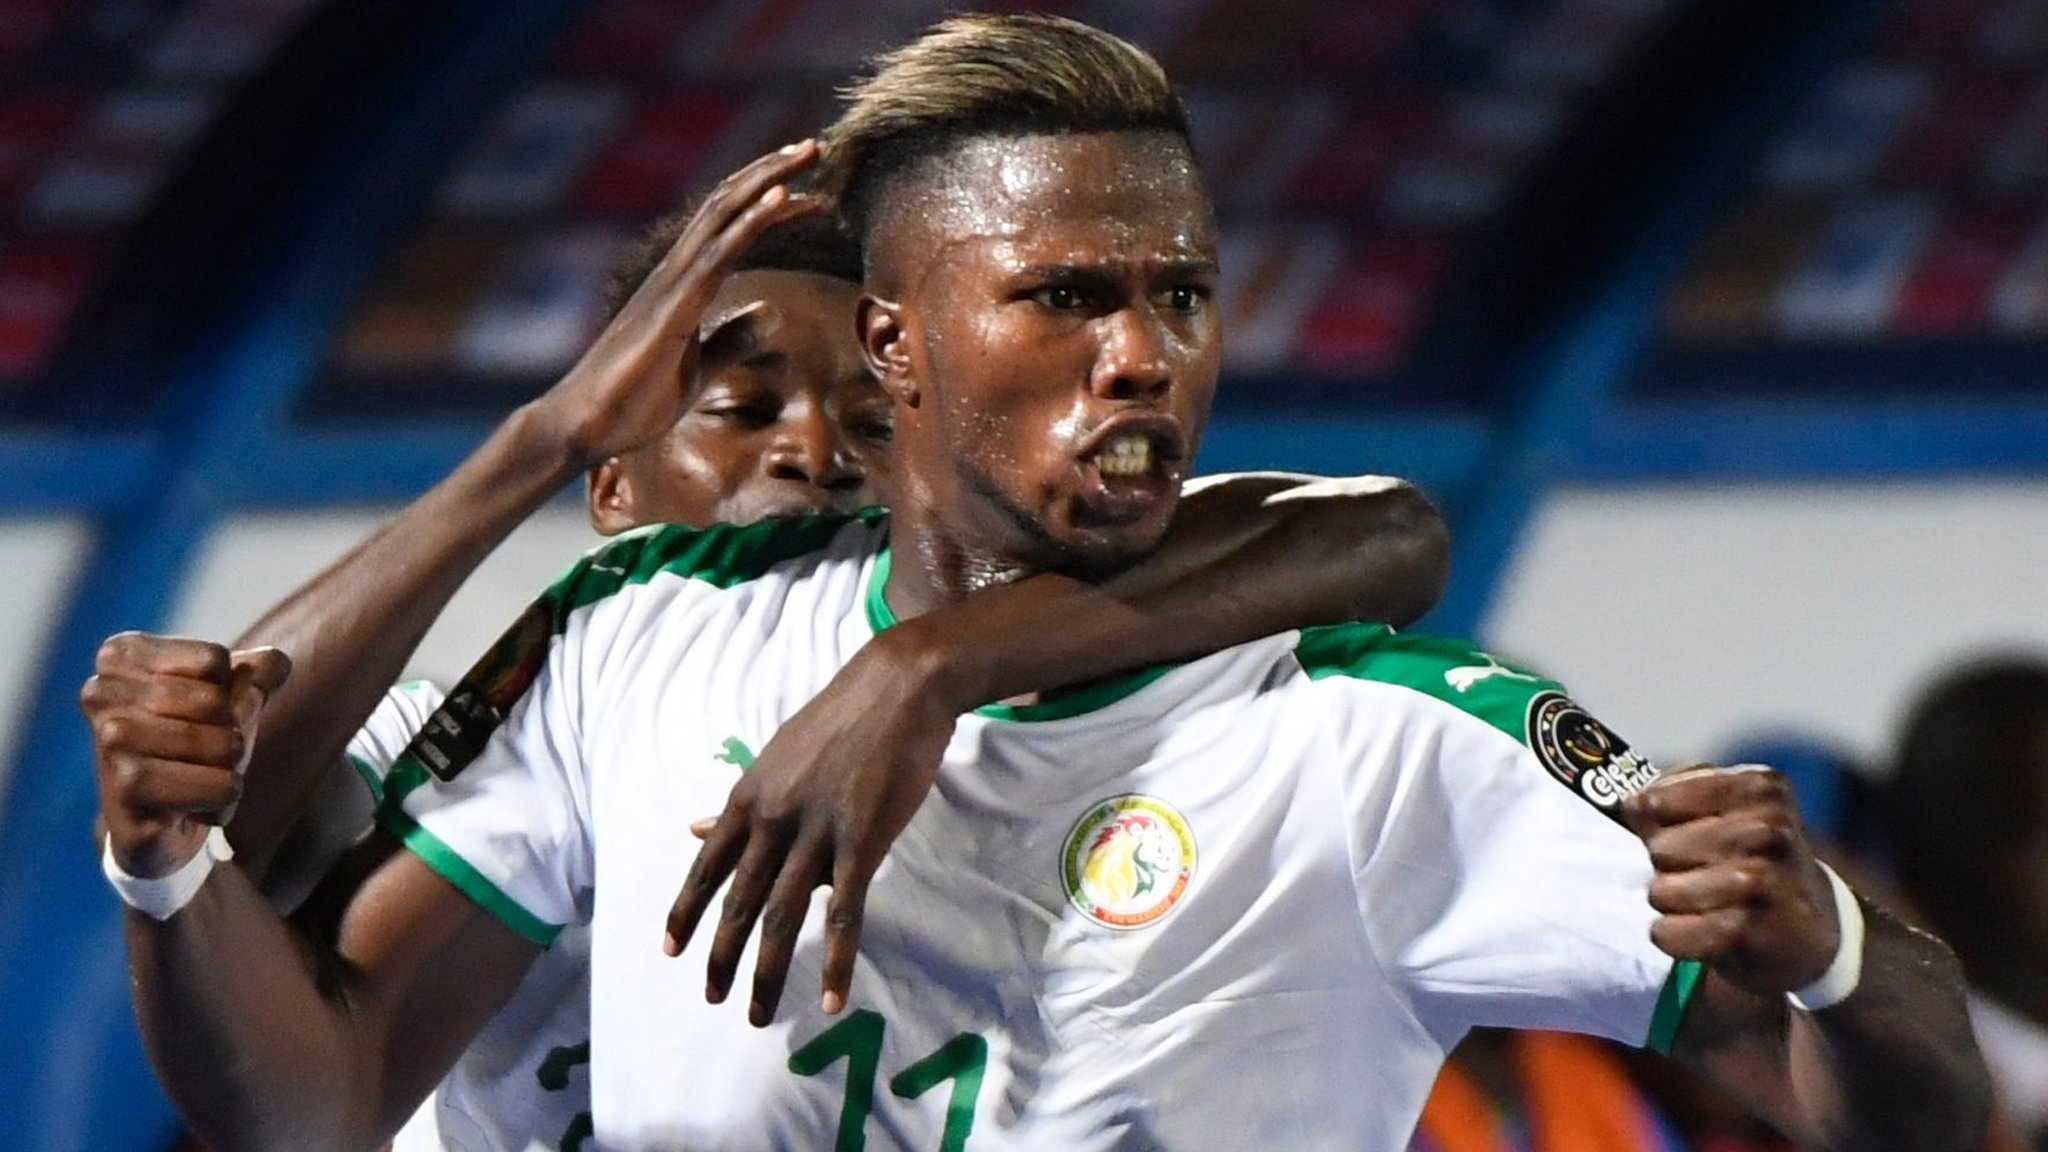 Africa Cup of Nations 2019: Senegal earn 2-0 victory over Tanzania